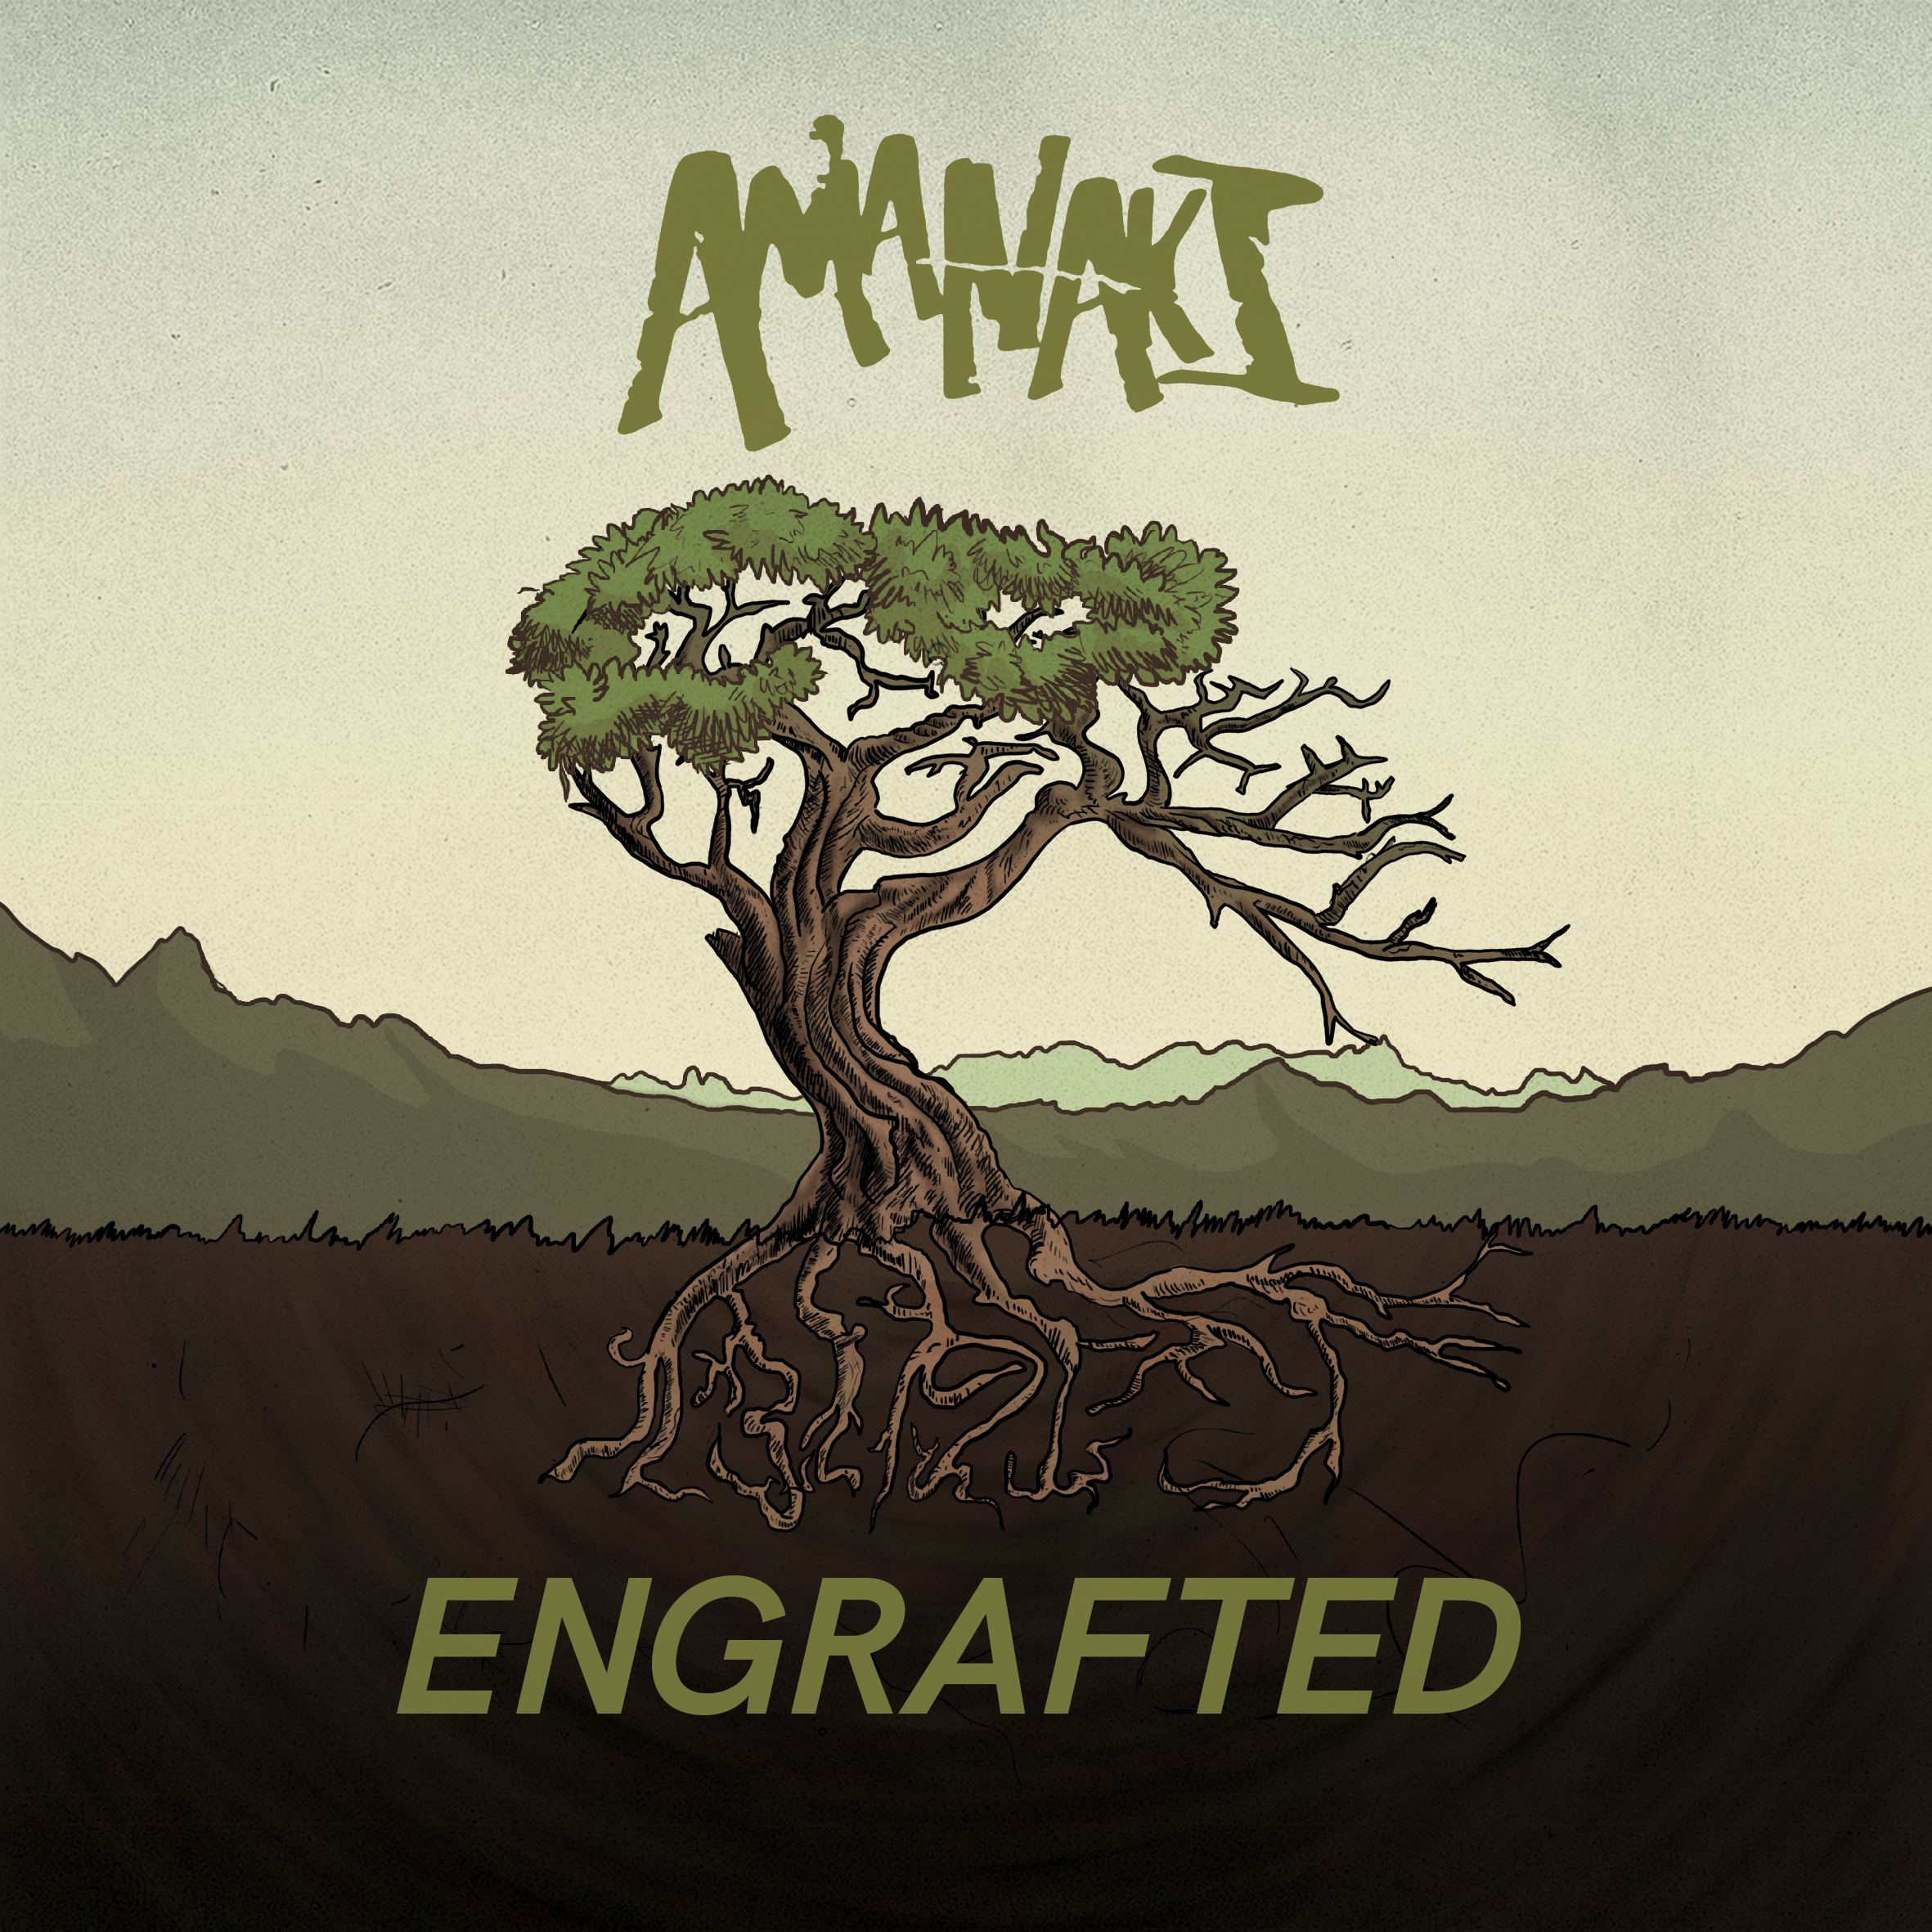 'Engrafted' EP    Out August 29 via North Supply Co    Spotify Pre Save -    HERE     Apple Music / Itunes -    HERE